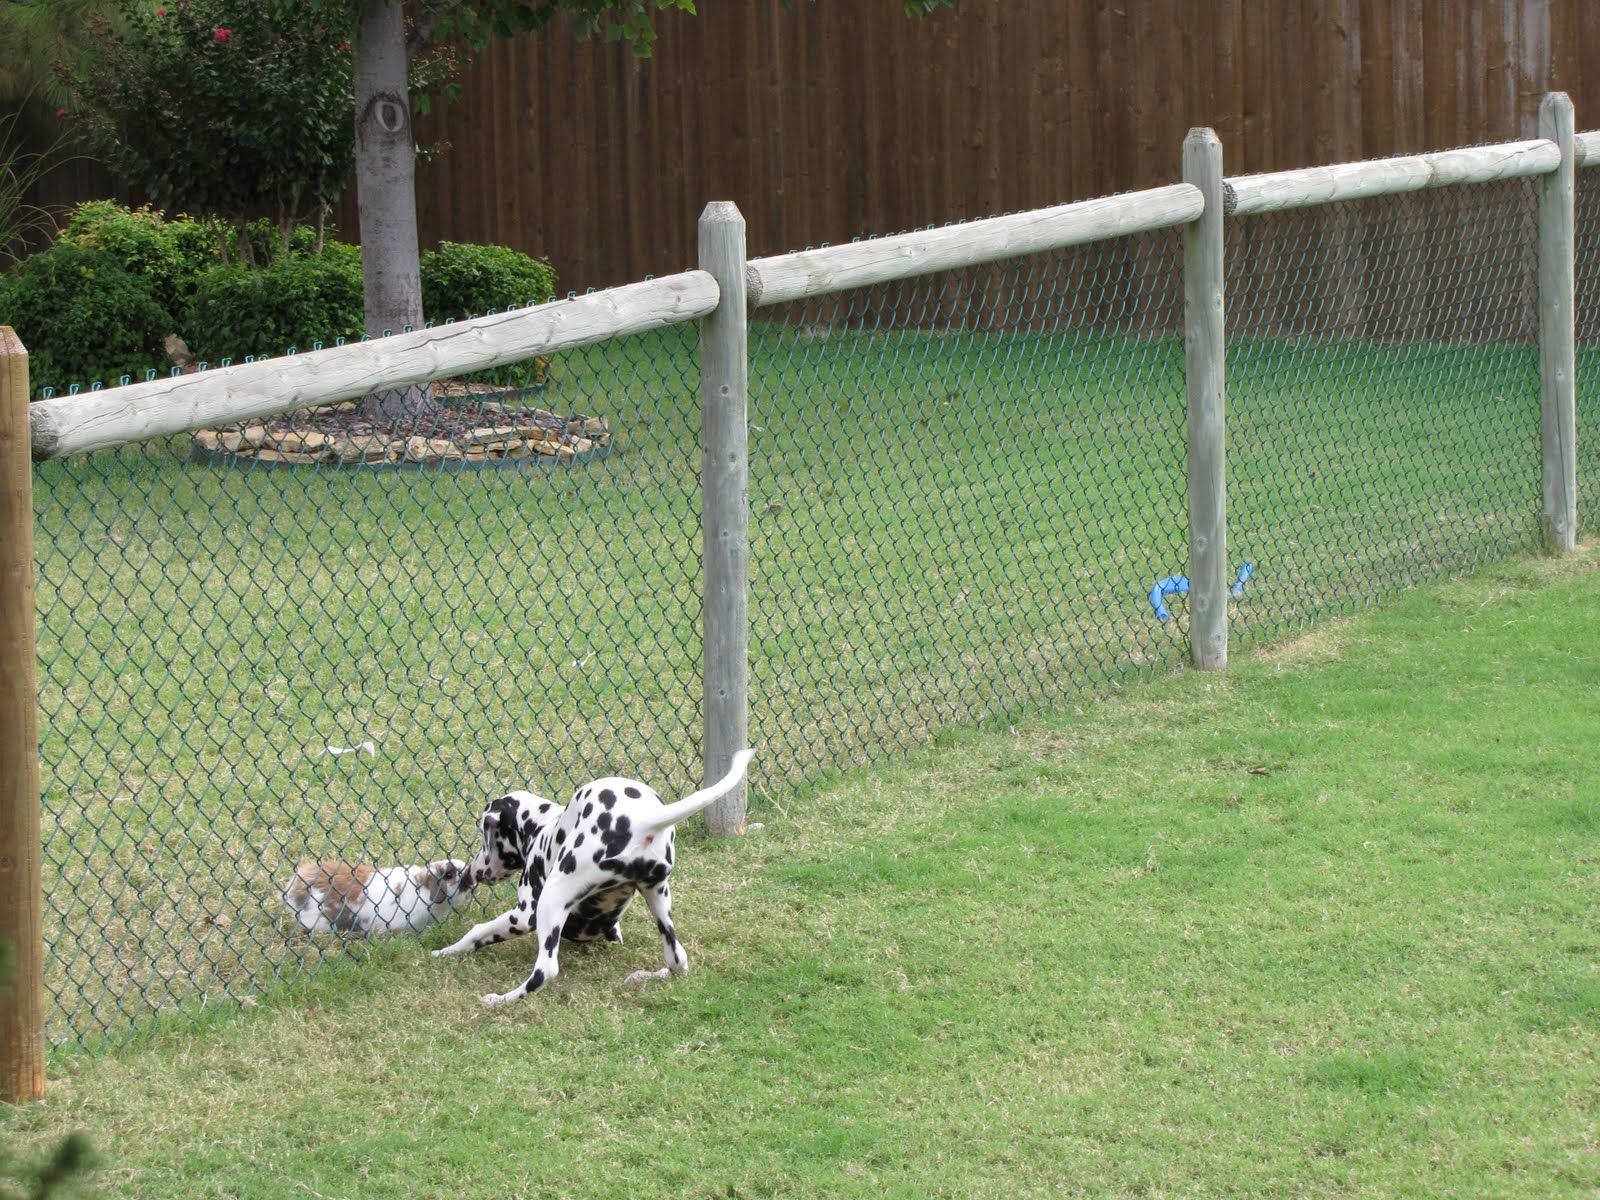 Cheapdogfenceideas Free Issues Of Family Circle Magazine Dog regarding Backyard Fences For Dogs